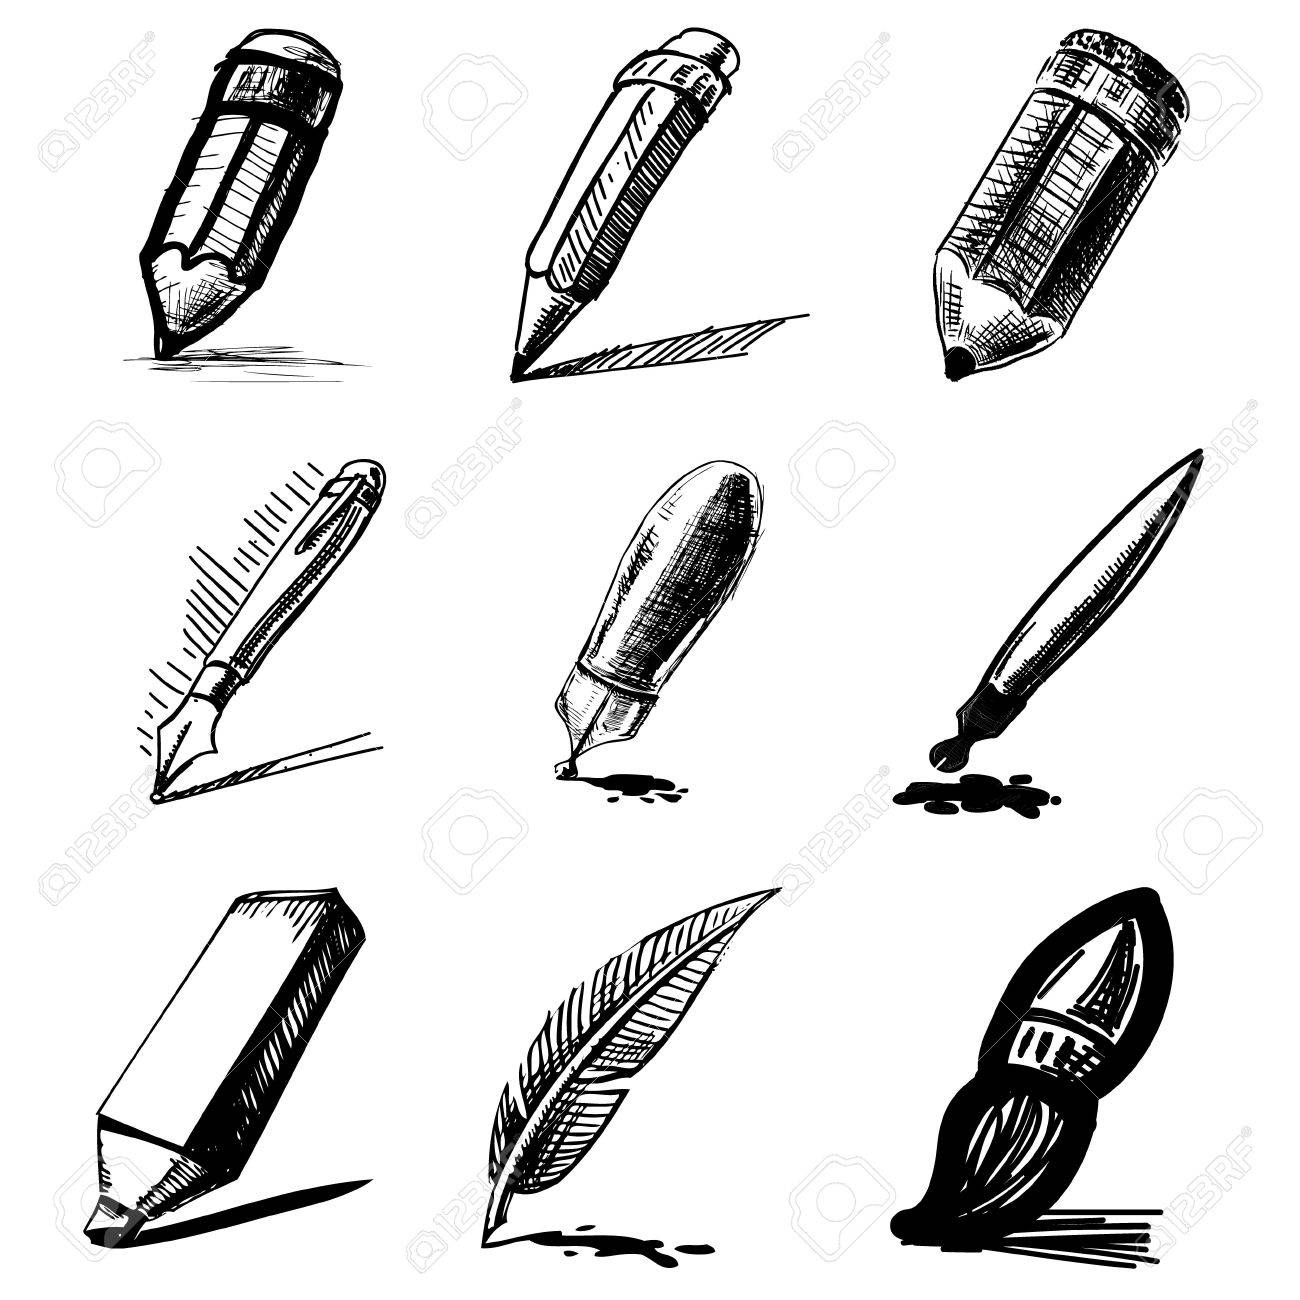 Pens and pencils collection Stock Vector - 20099901